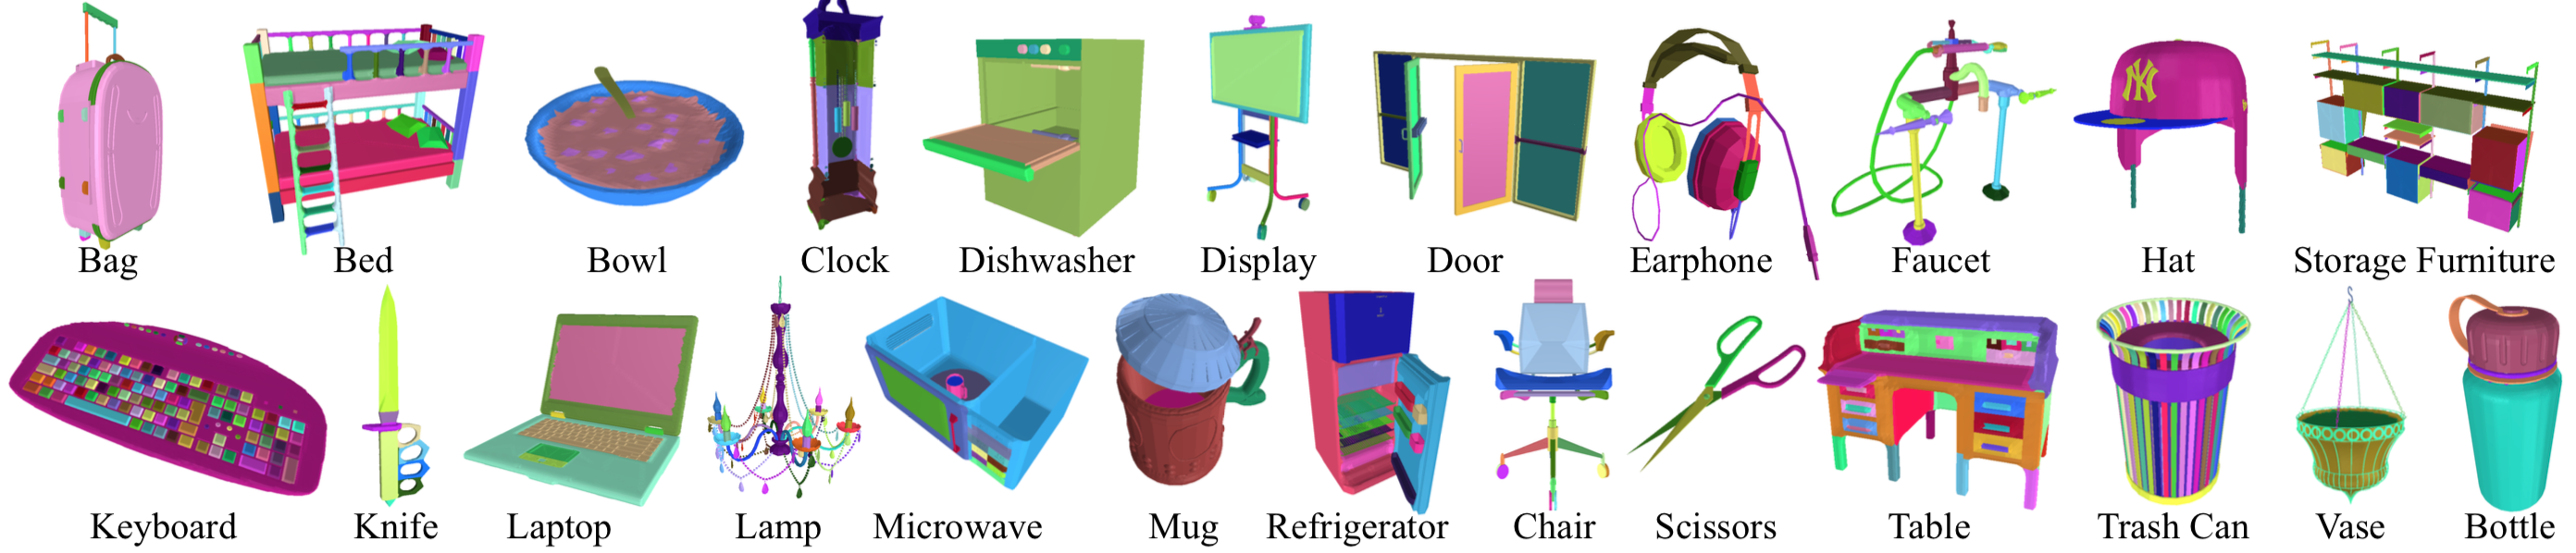 PartNet: Database of 3D objects to help robots